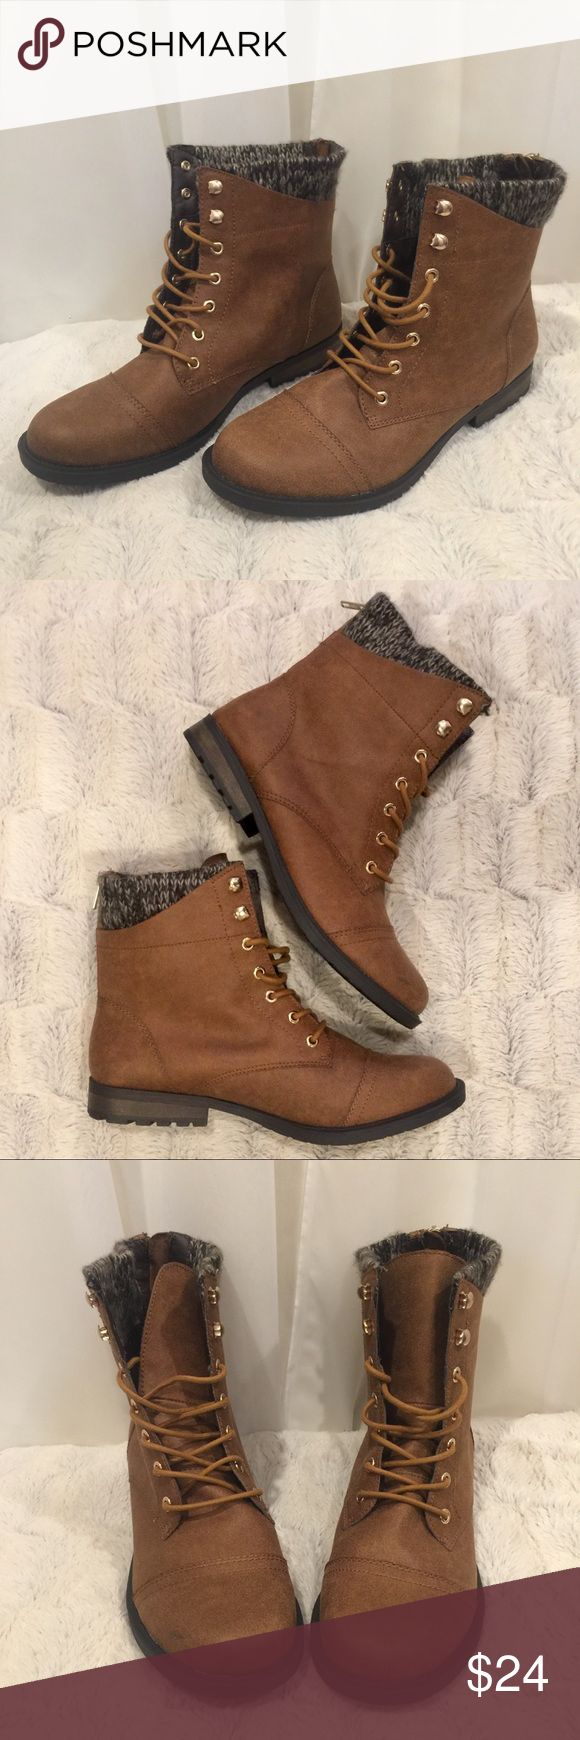 "Sweater Detailed Lace Up Ankle Boots Boots are by Curfew and are in a size 11.  They're a dark camel color with gold accents, and black and grey sweater detailing around the top.  They have a wide tongue, functional zippers in the back & grips on the heel. Boots are in great, like new condition and have a medium width.   Not Accepting Trades  Note to ""Scammers"": I film my entire packing process so don't even try it. ❤️ Curfew Shoes Ankle Boots & Booties"